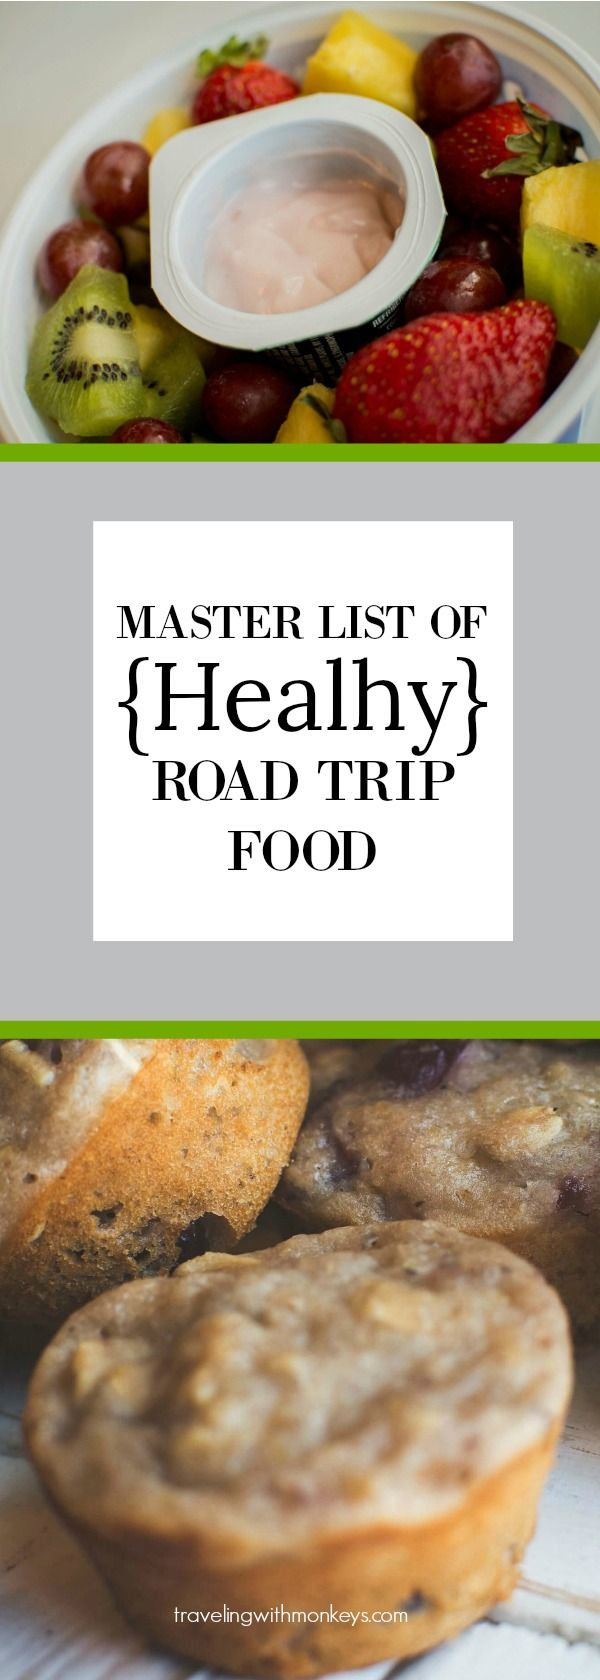 Healthy Road Trip Recipes | travelingwithmonkeys.com